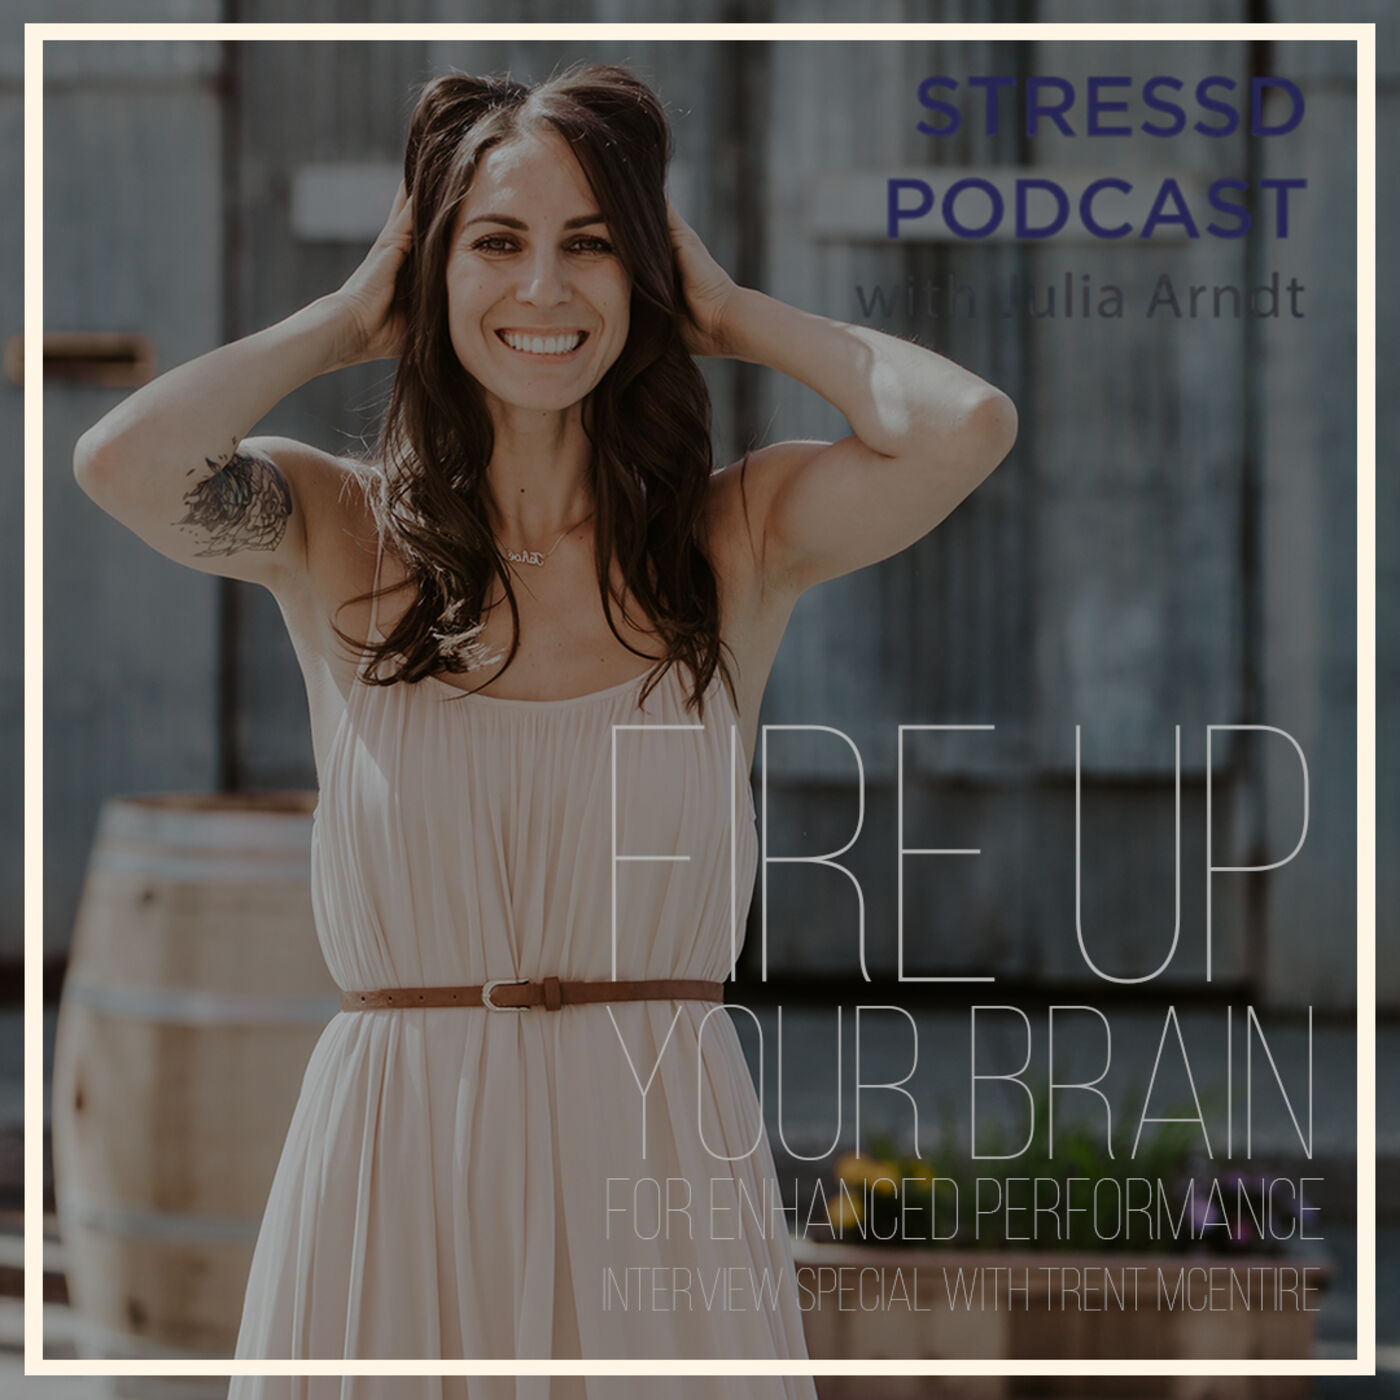 Fire Up Your Brain For Enhanced Performance [INTERVIEW]